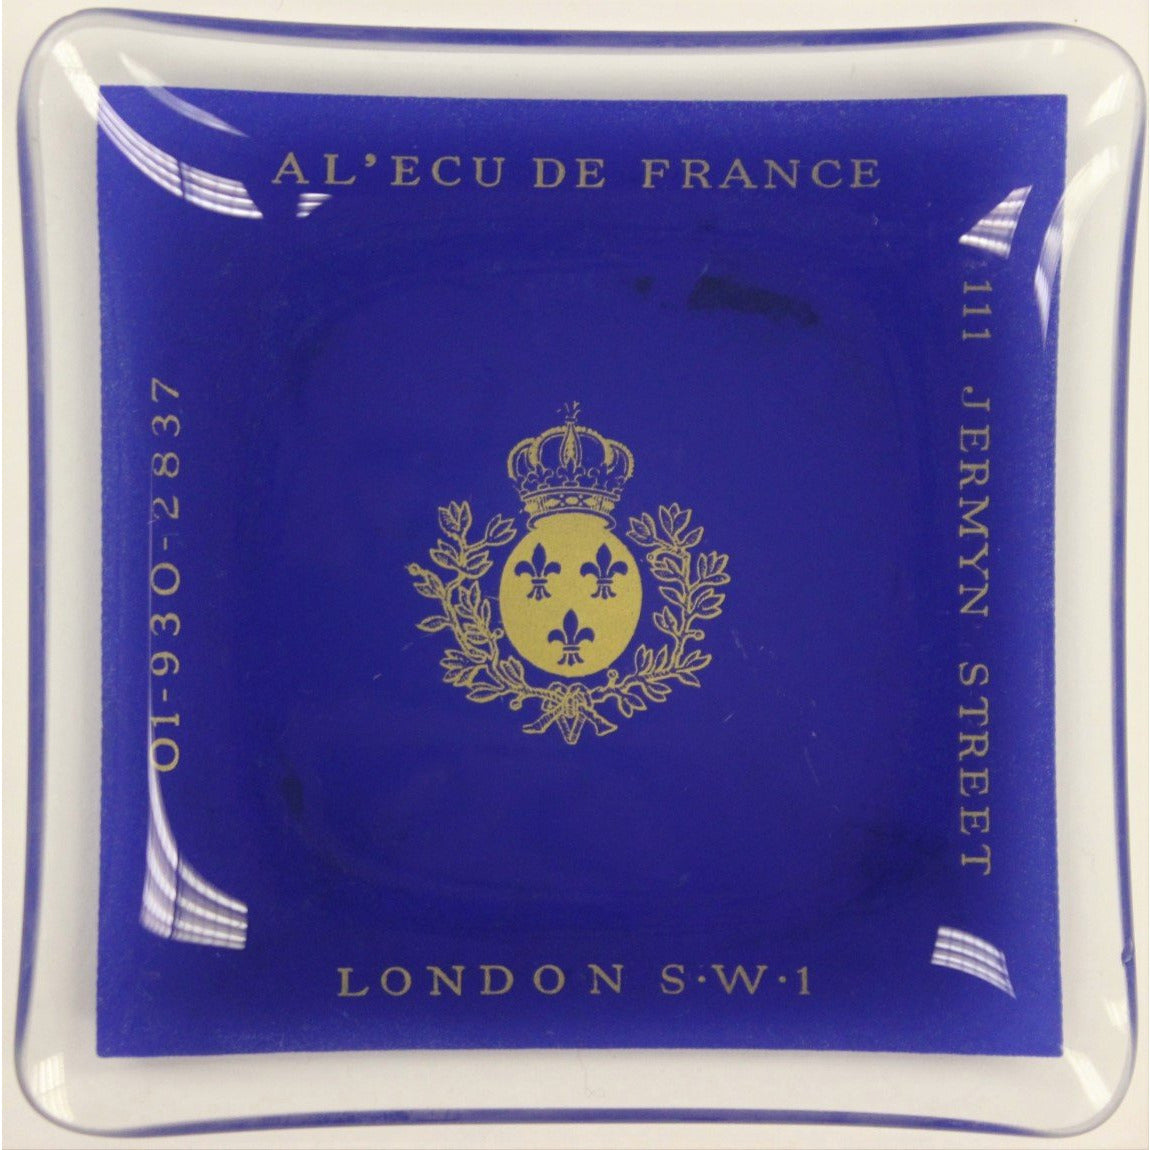 Al' Ecu De France London SW1 Ashtray